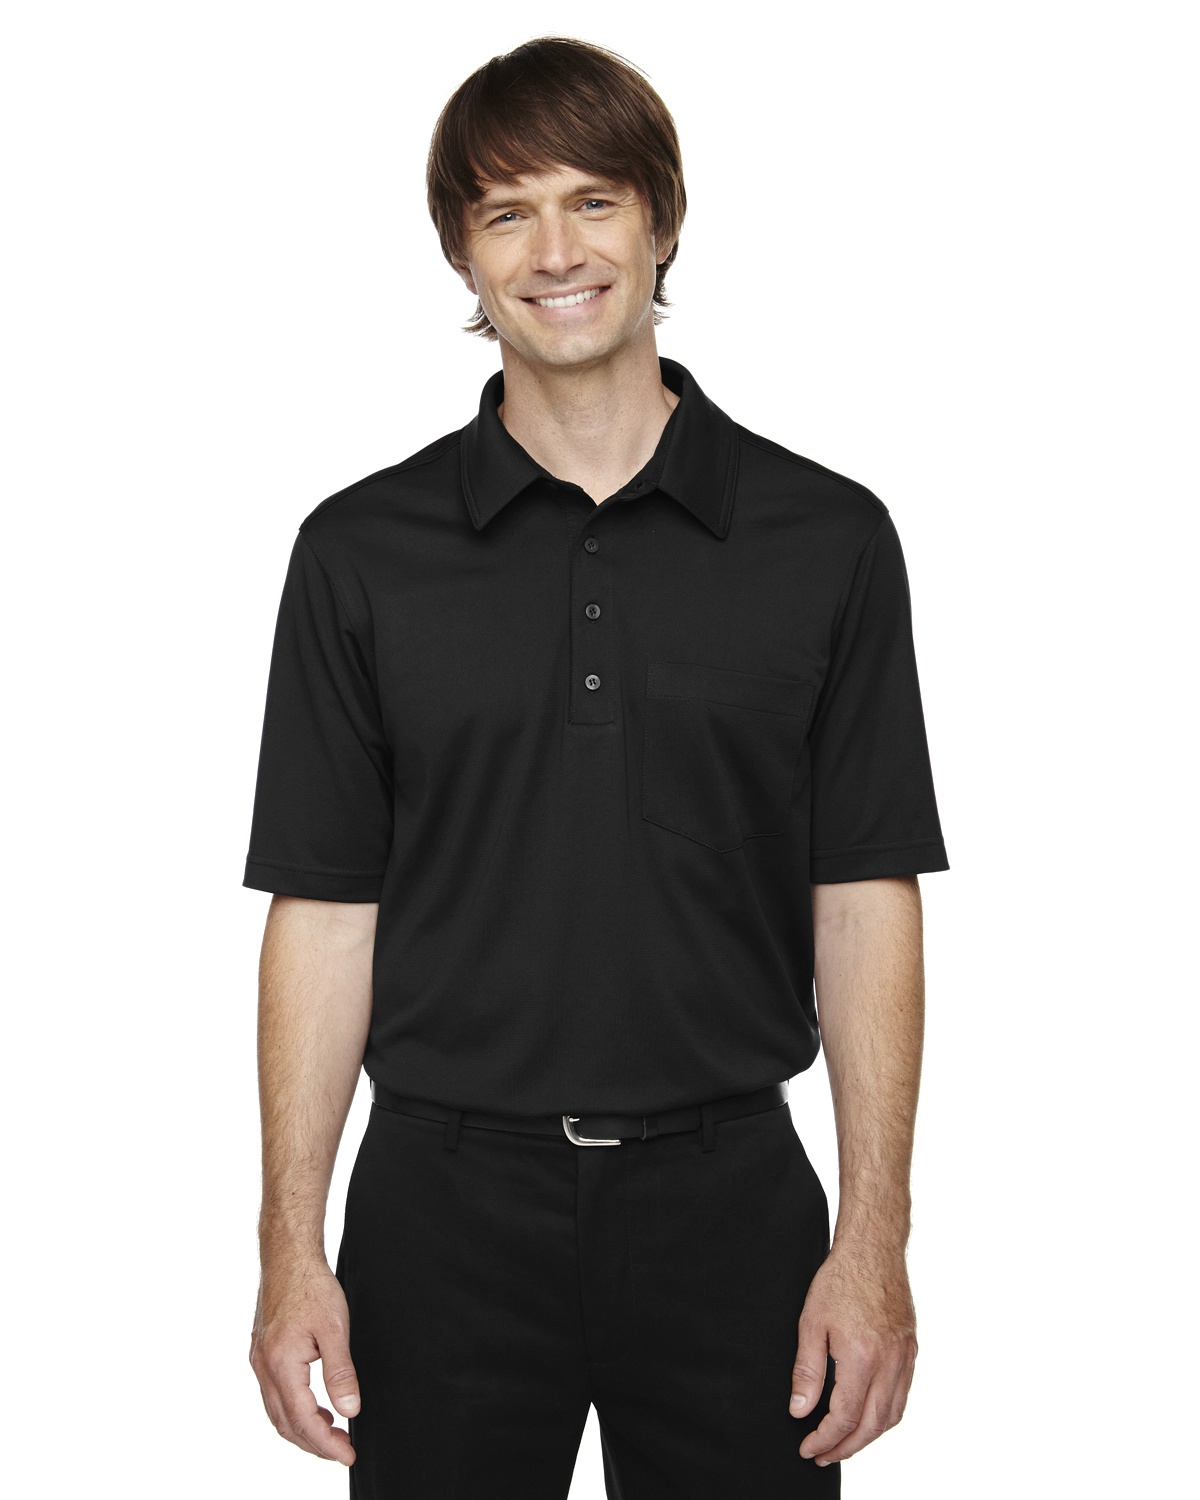 'Ash City - Extreme 85114 Men's Eperformance Shift Snag Protection Plus Polo'